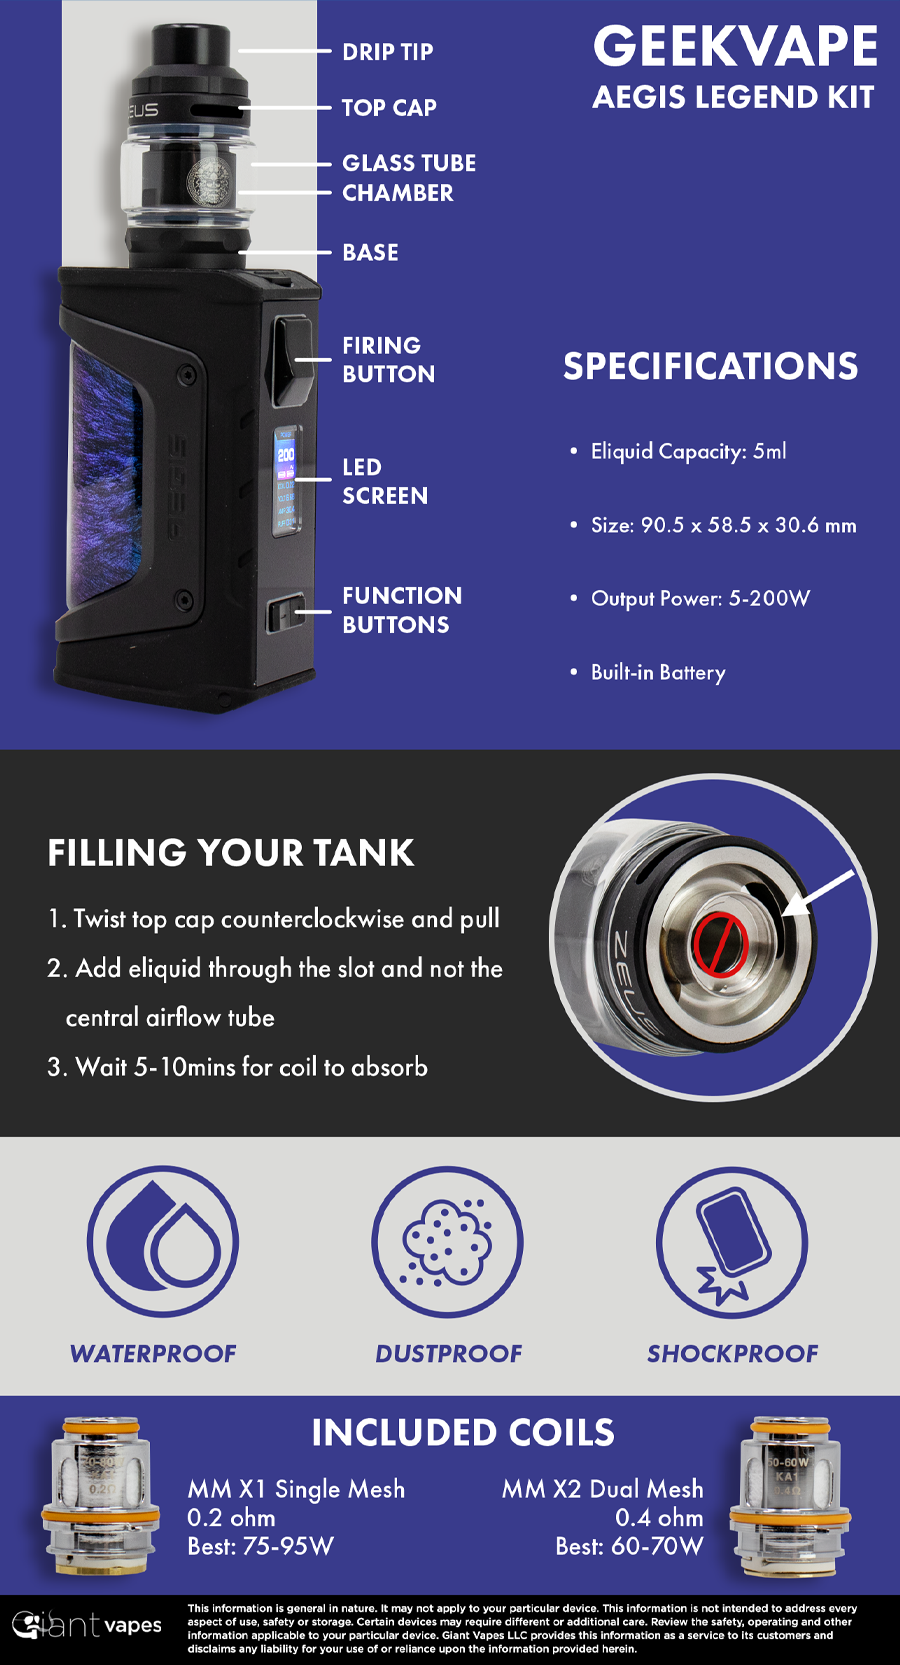 GeekVape Aegis Legend Kit Infographic